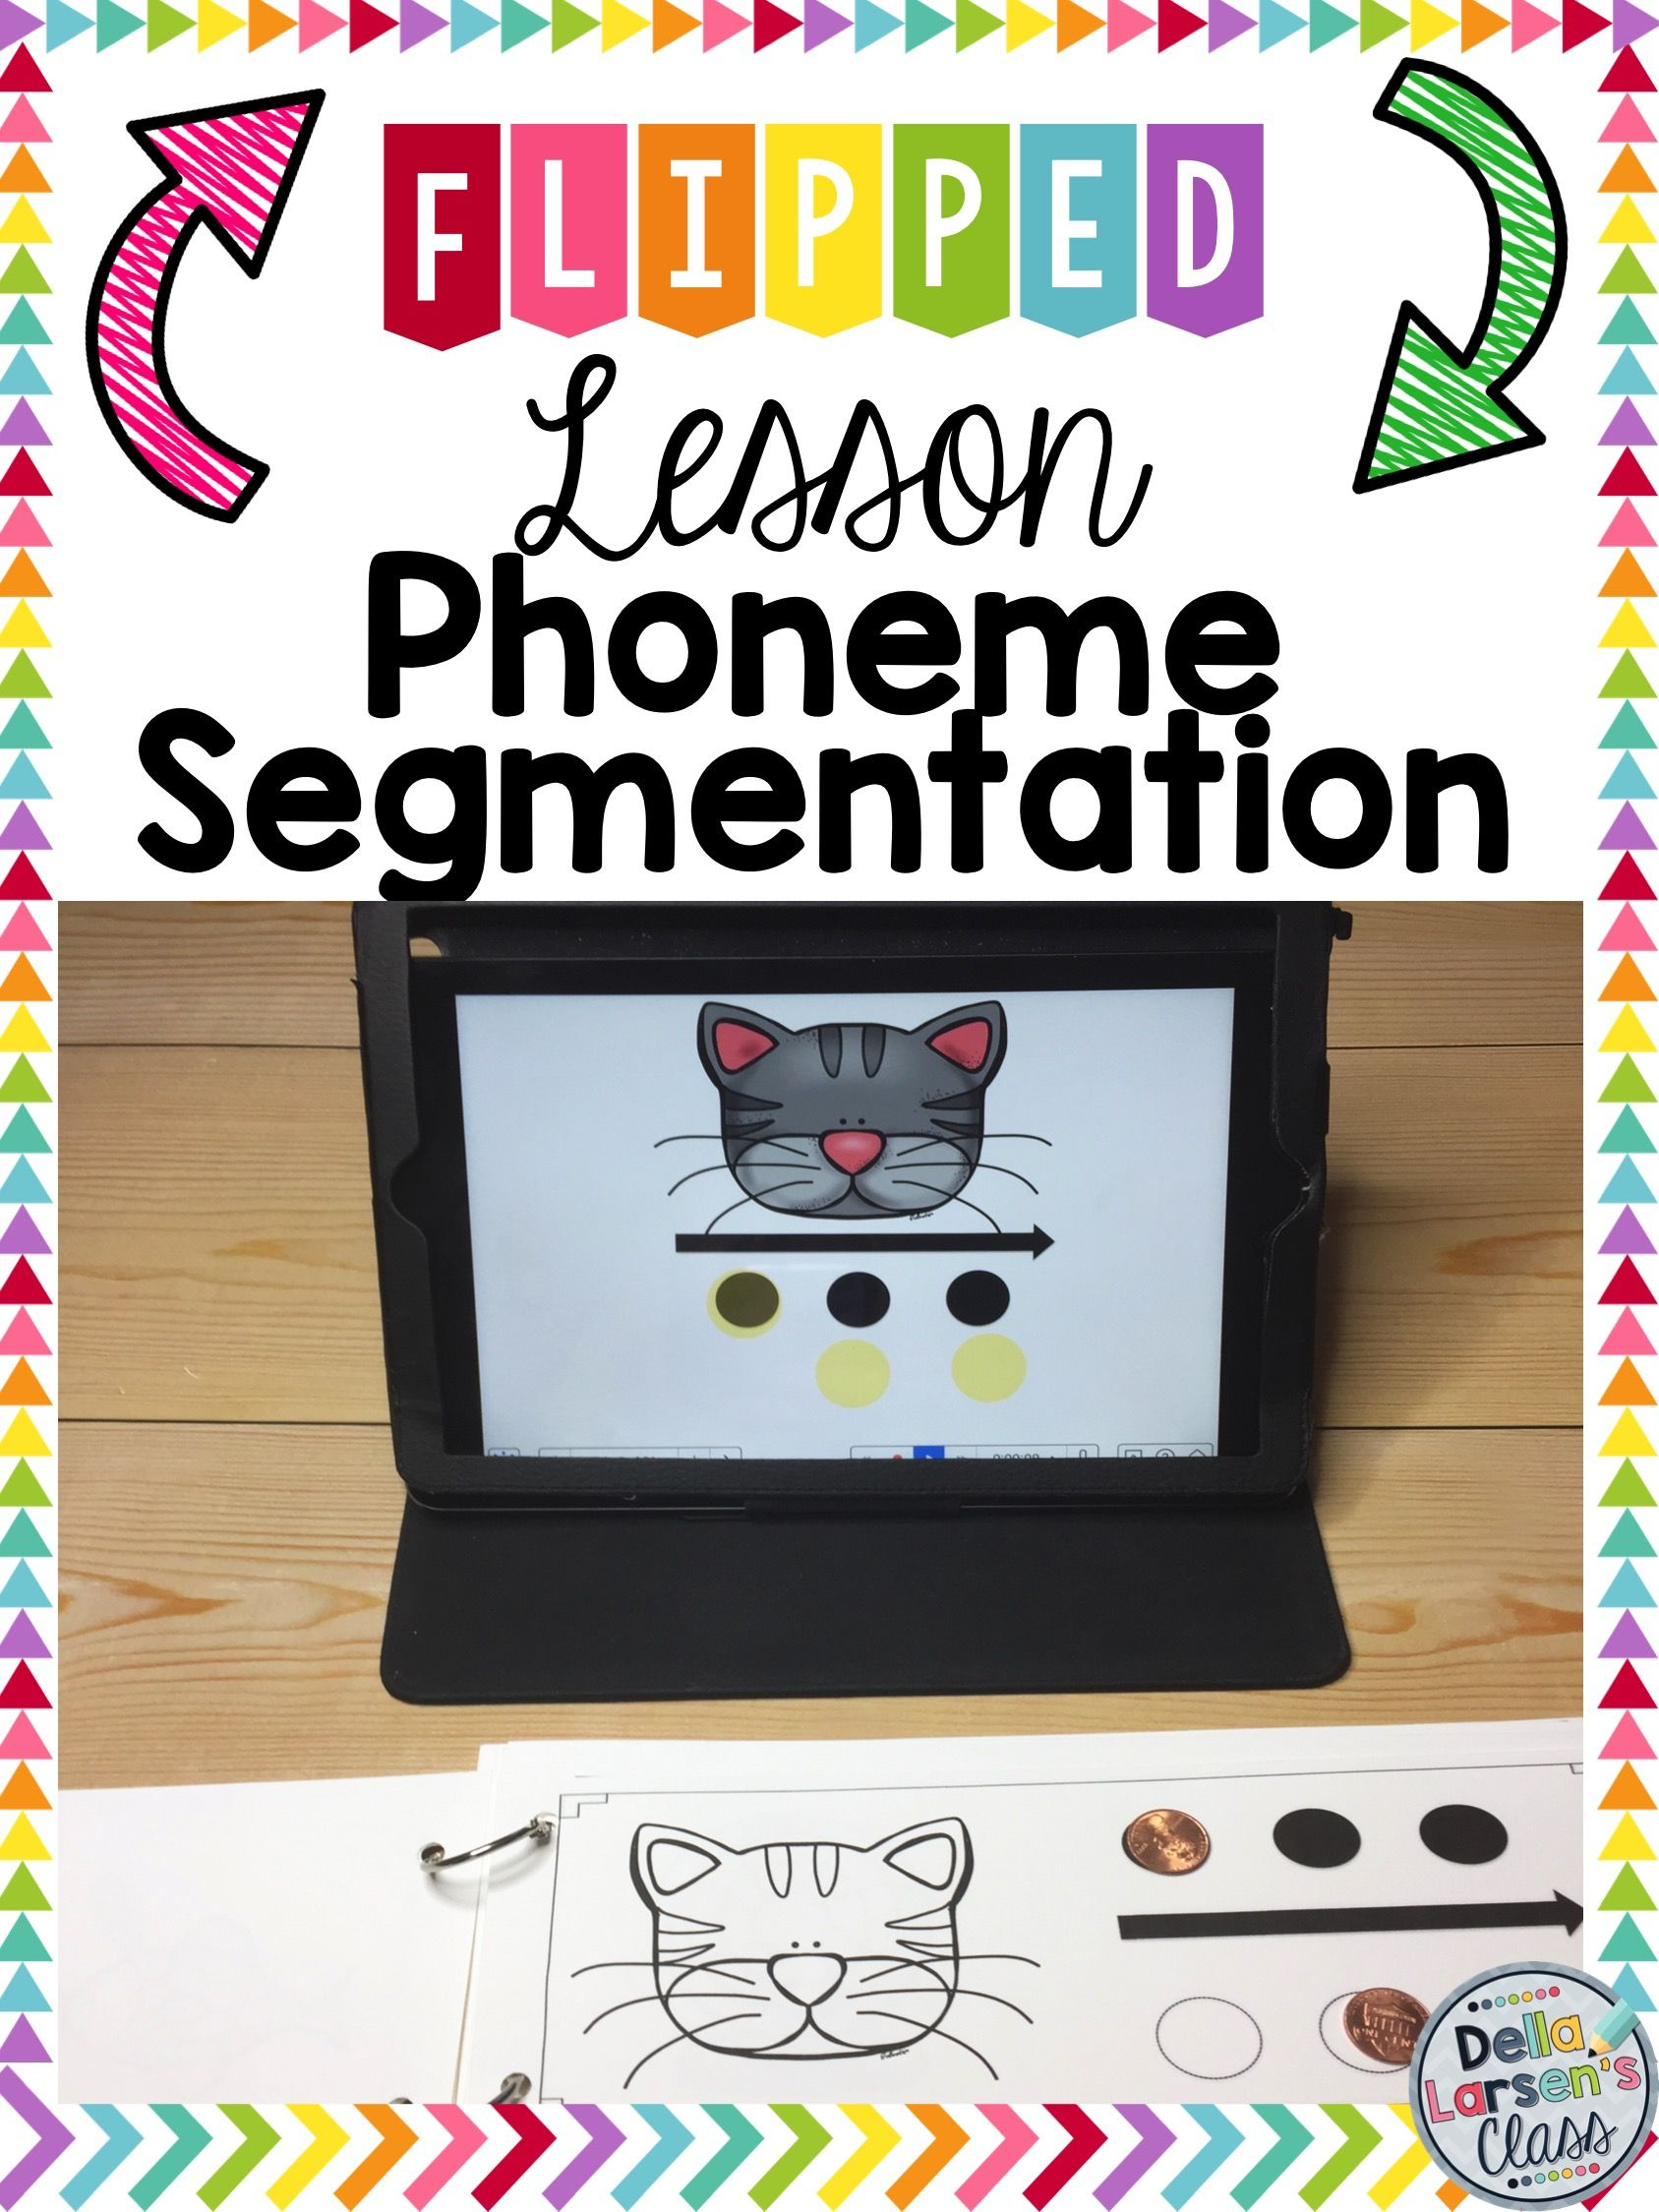 Phonemen Segmentation Flipped Lessons